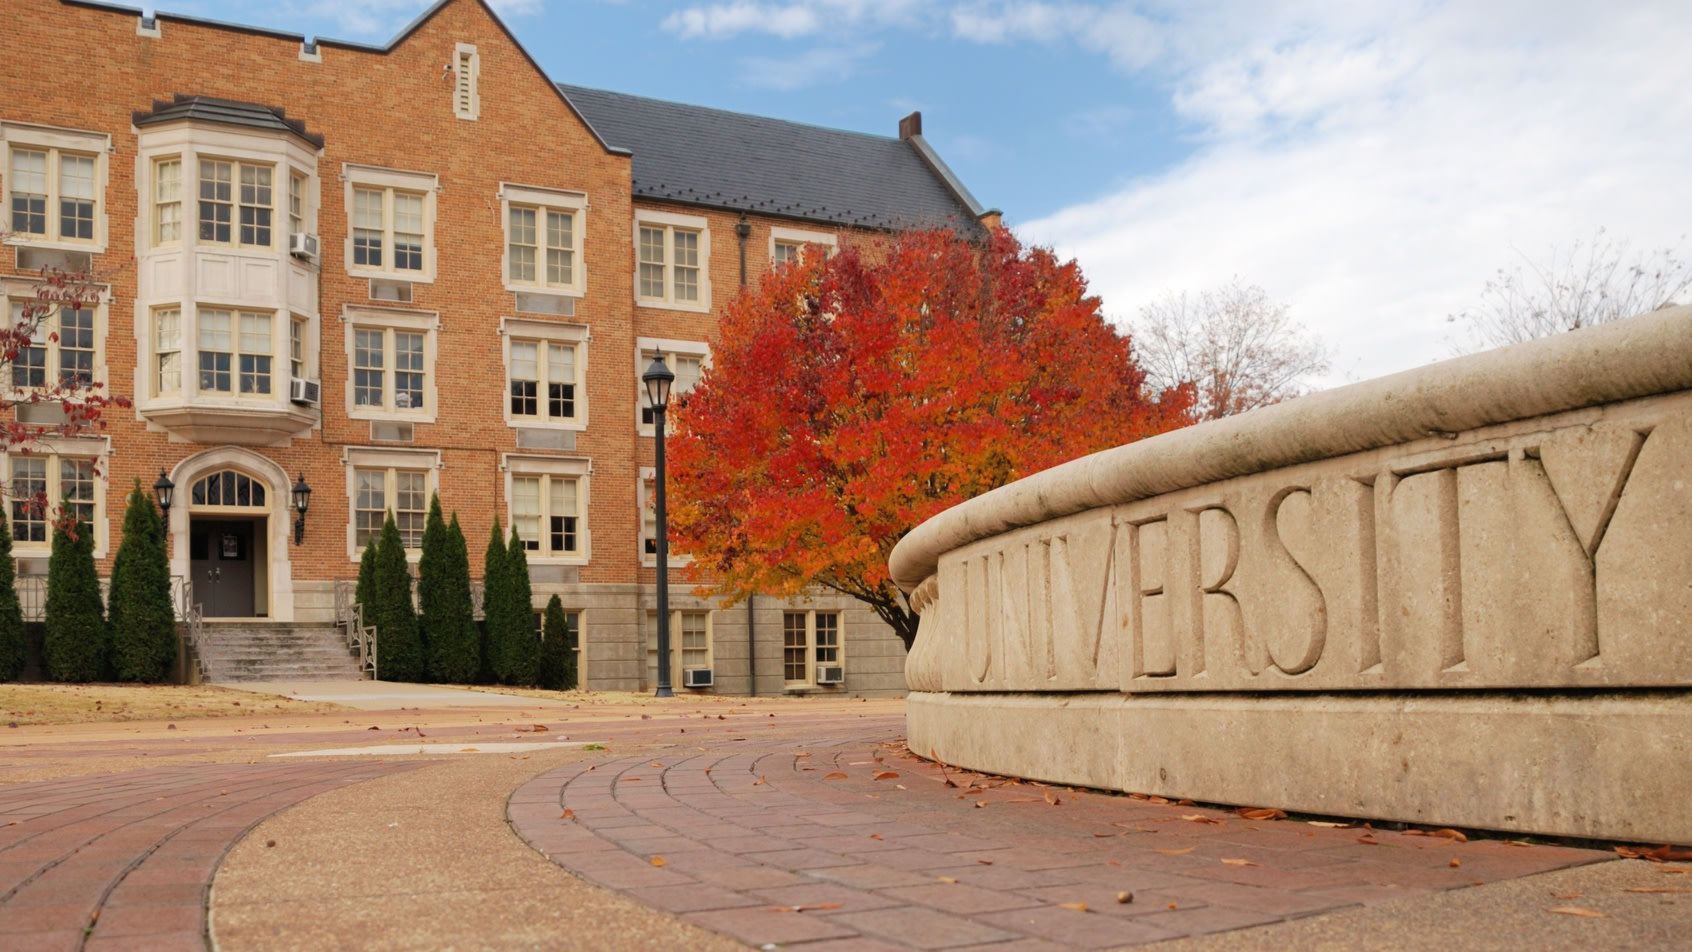 Tennessee Found To Have Owed HBCU At Least $150M From Funds Dating Back More Than 100 Years